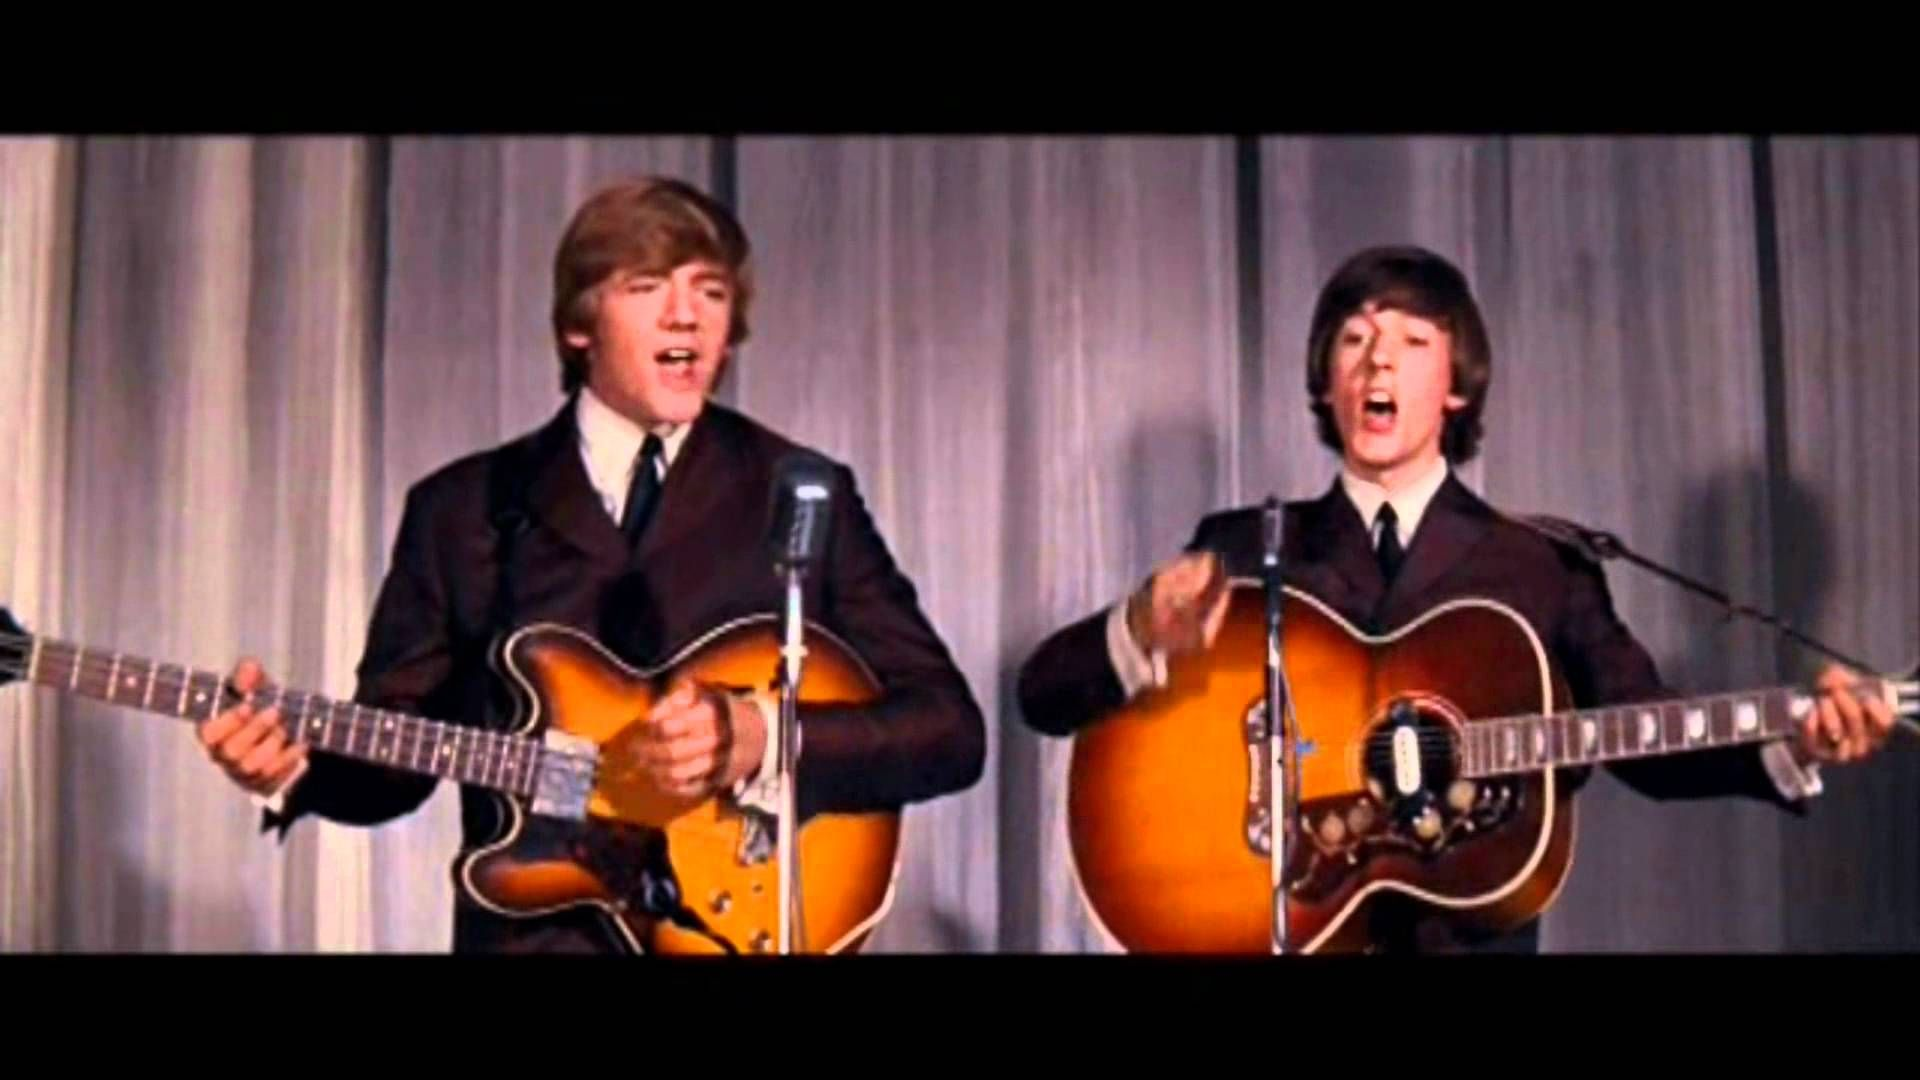 Cinecrisis Reviews - Herman's Hermits in Hold On! (1966)